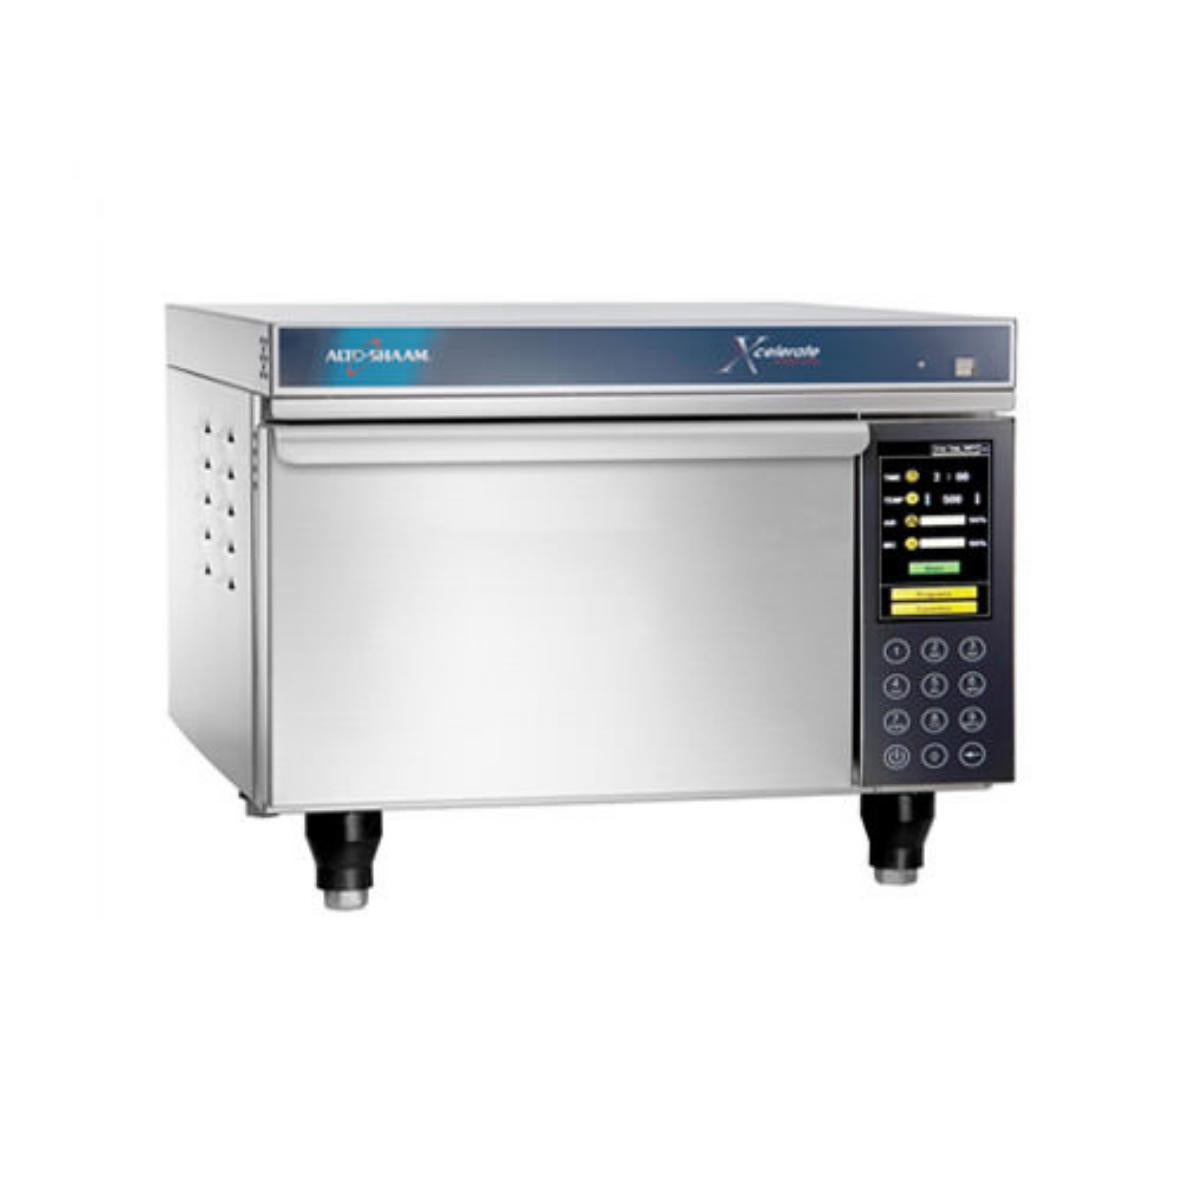 Alto Shaam XL-300 Microwave Convection Oven